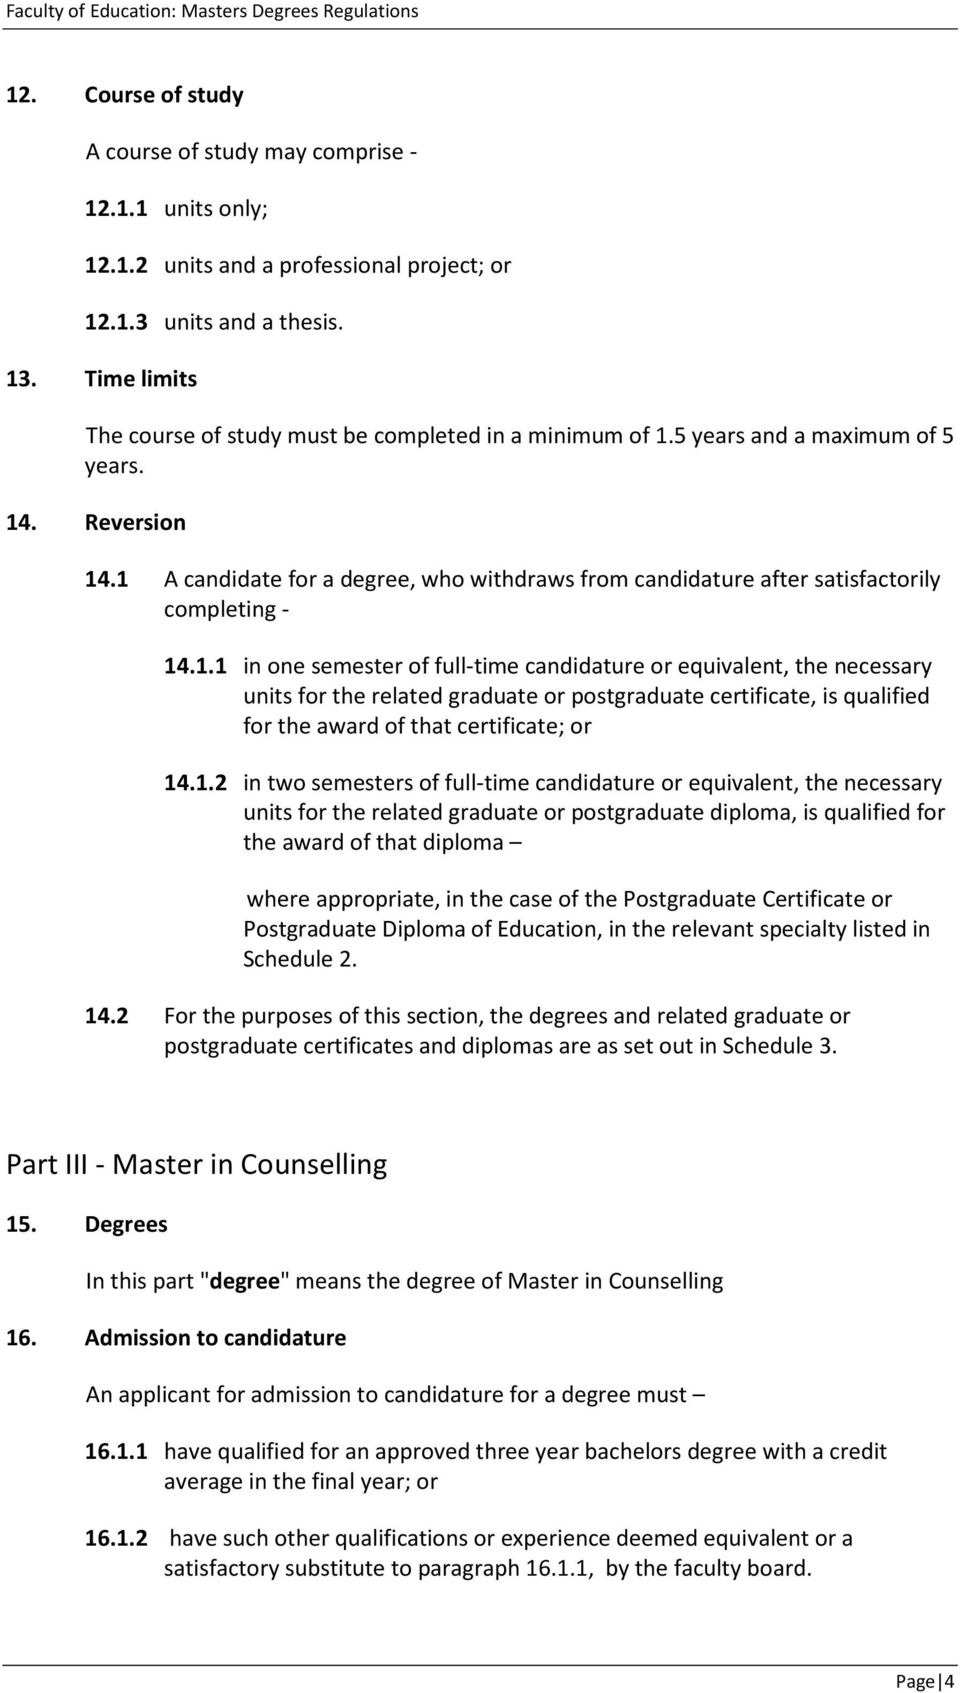 1 A candidate for a degree, who withdraws from candidature after satisfactorily completing - 14.1.1 in one semester of full-time candidature or equivalent, the necessary units for the related graduate or postgraduate certificate, is qualified for the award of that certificate; or 14.